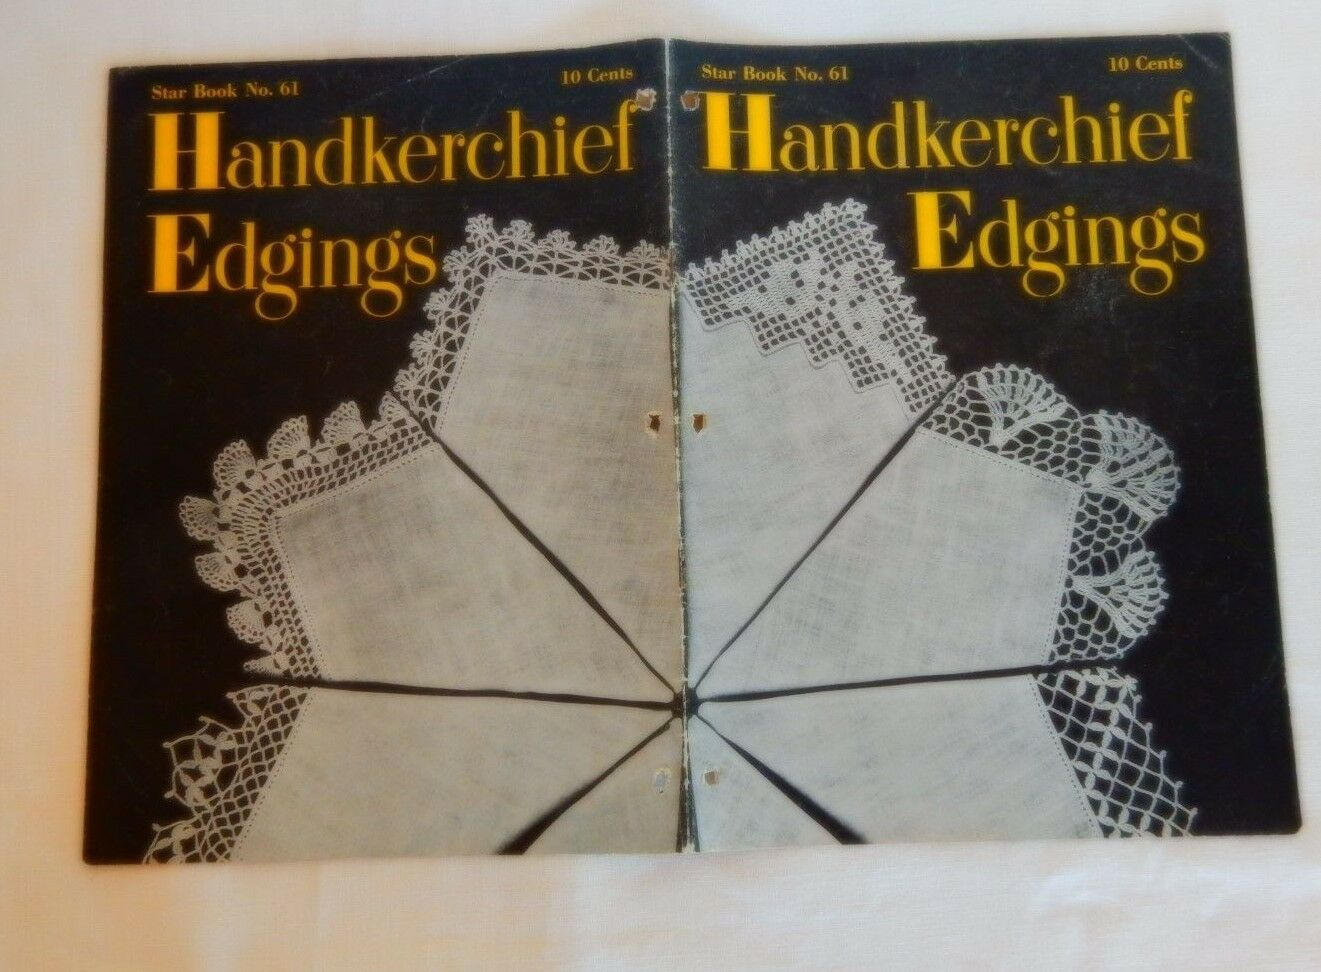 Handkerchief edging crochet patterns vintage 1948 star book 61 ebay picture 1 of 1 bankloansurffo Image collections